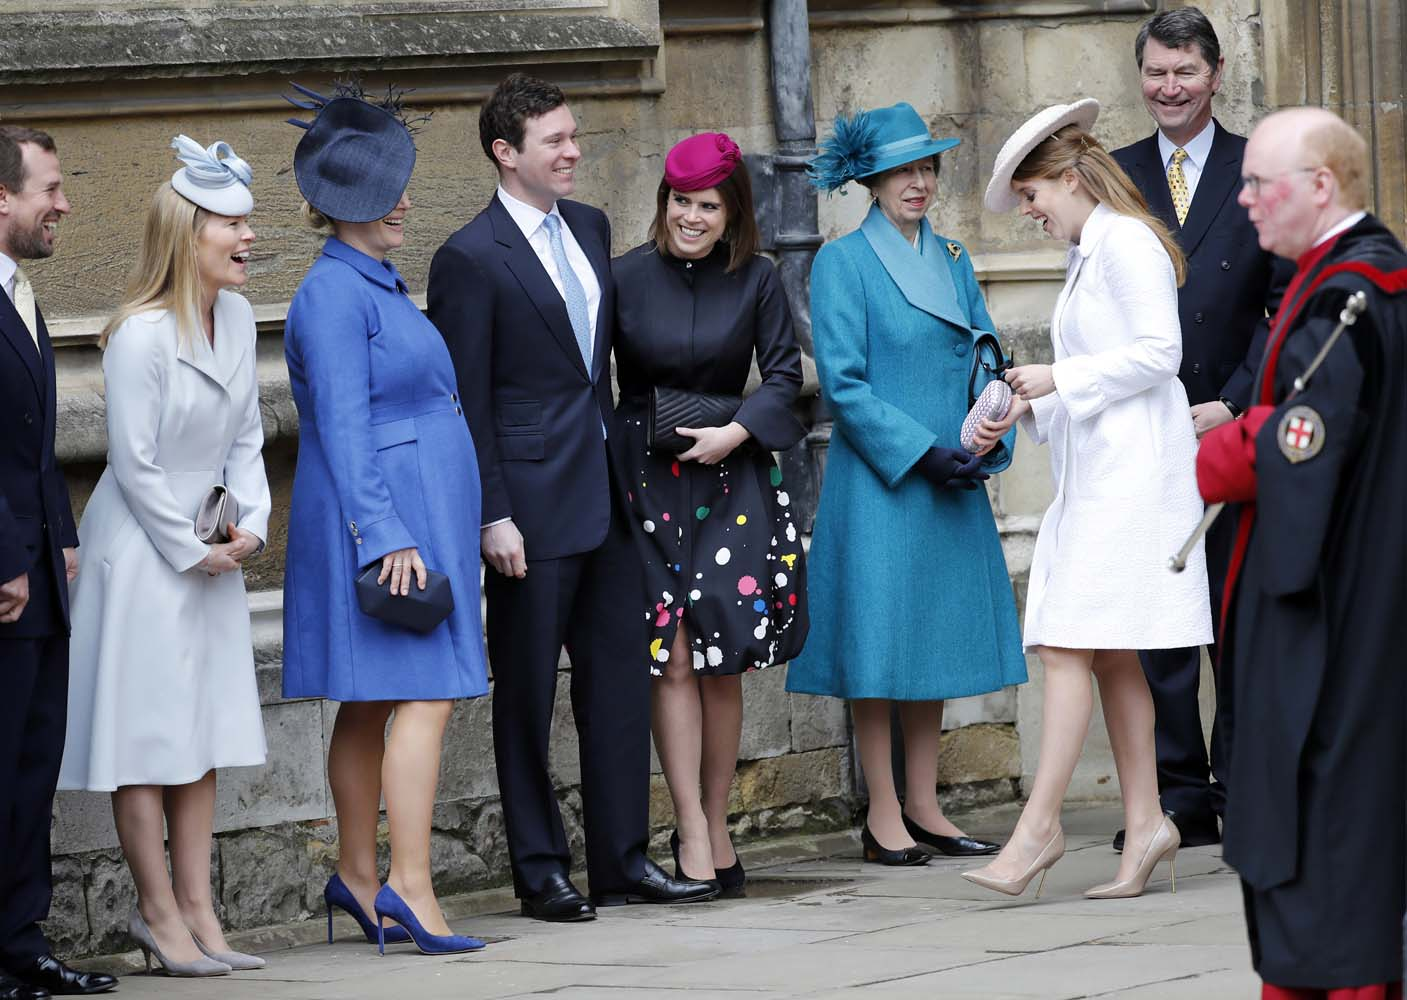 Britain's Princess Eugenie and other members of Britain's royal family arrive for the annual Easter Sunday service at St George's Chapel at Windsor Castle in Windsor, Britain, April 1, 2018. Tolga Akmen/Pool via Reuters